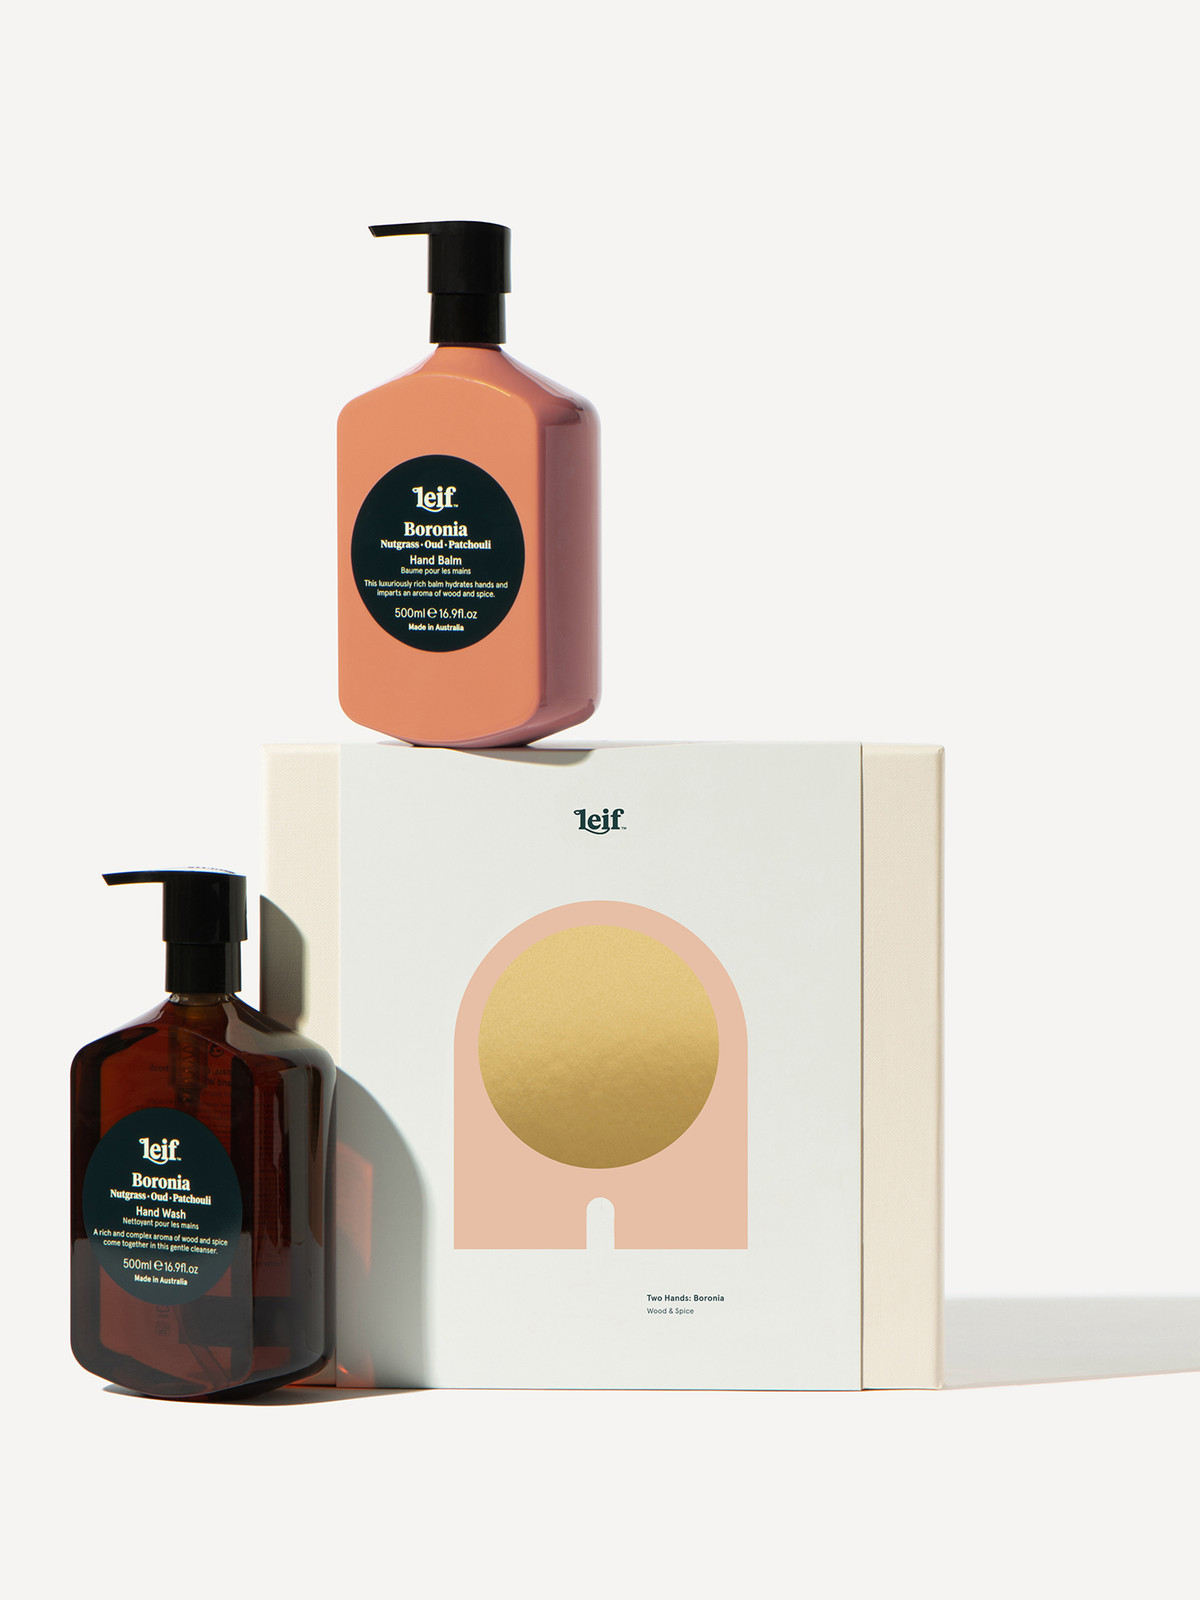 Leif Two Hands Boronia Gift Set from Merchant and Green